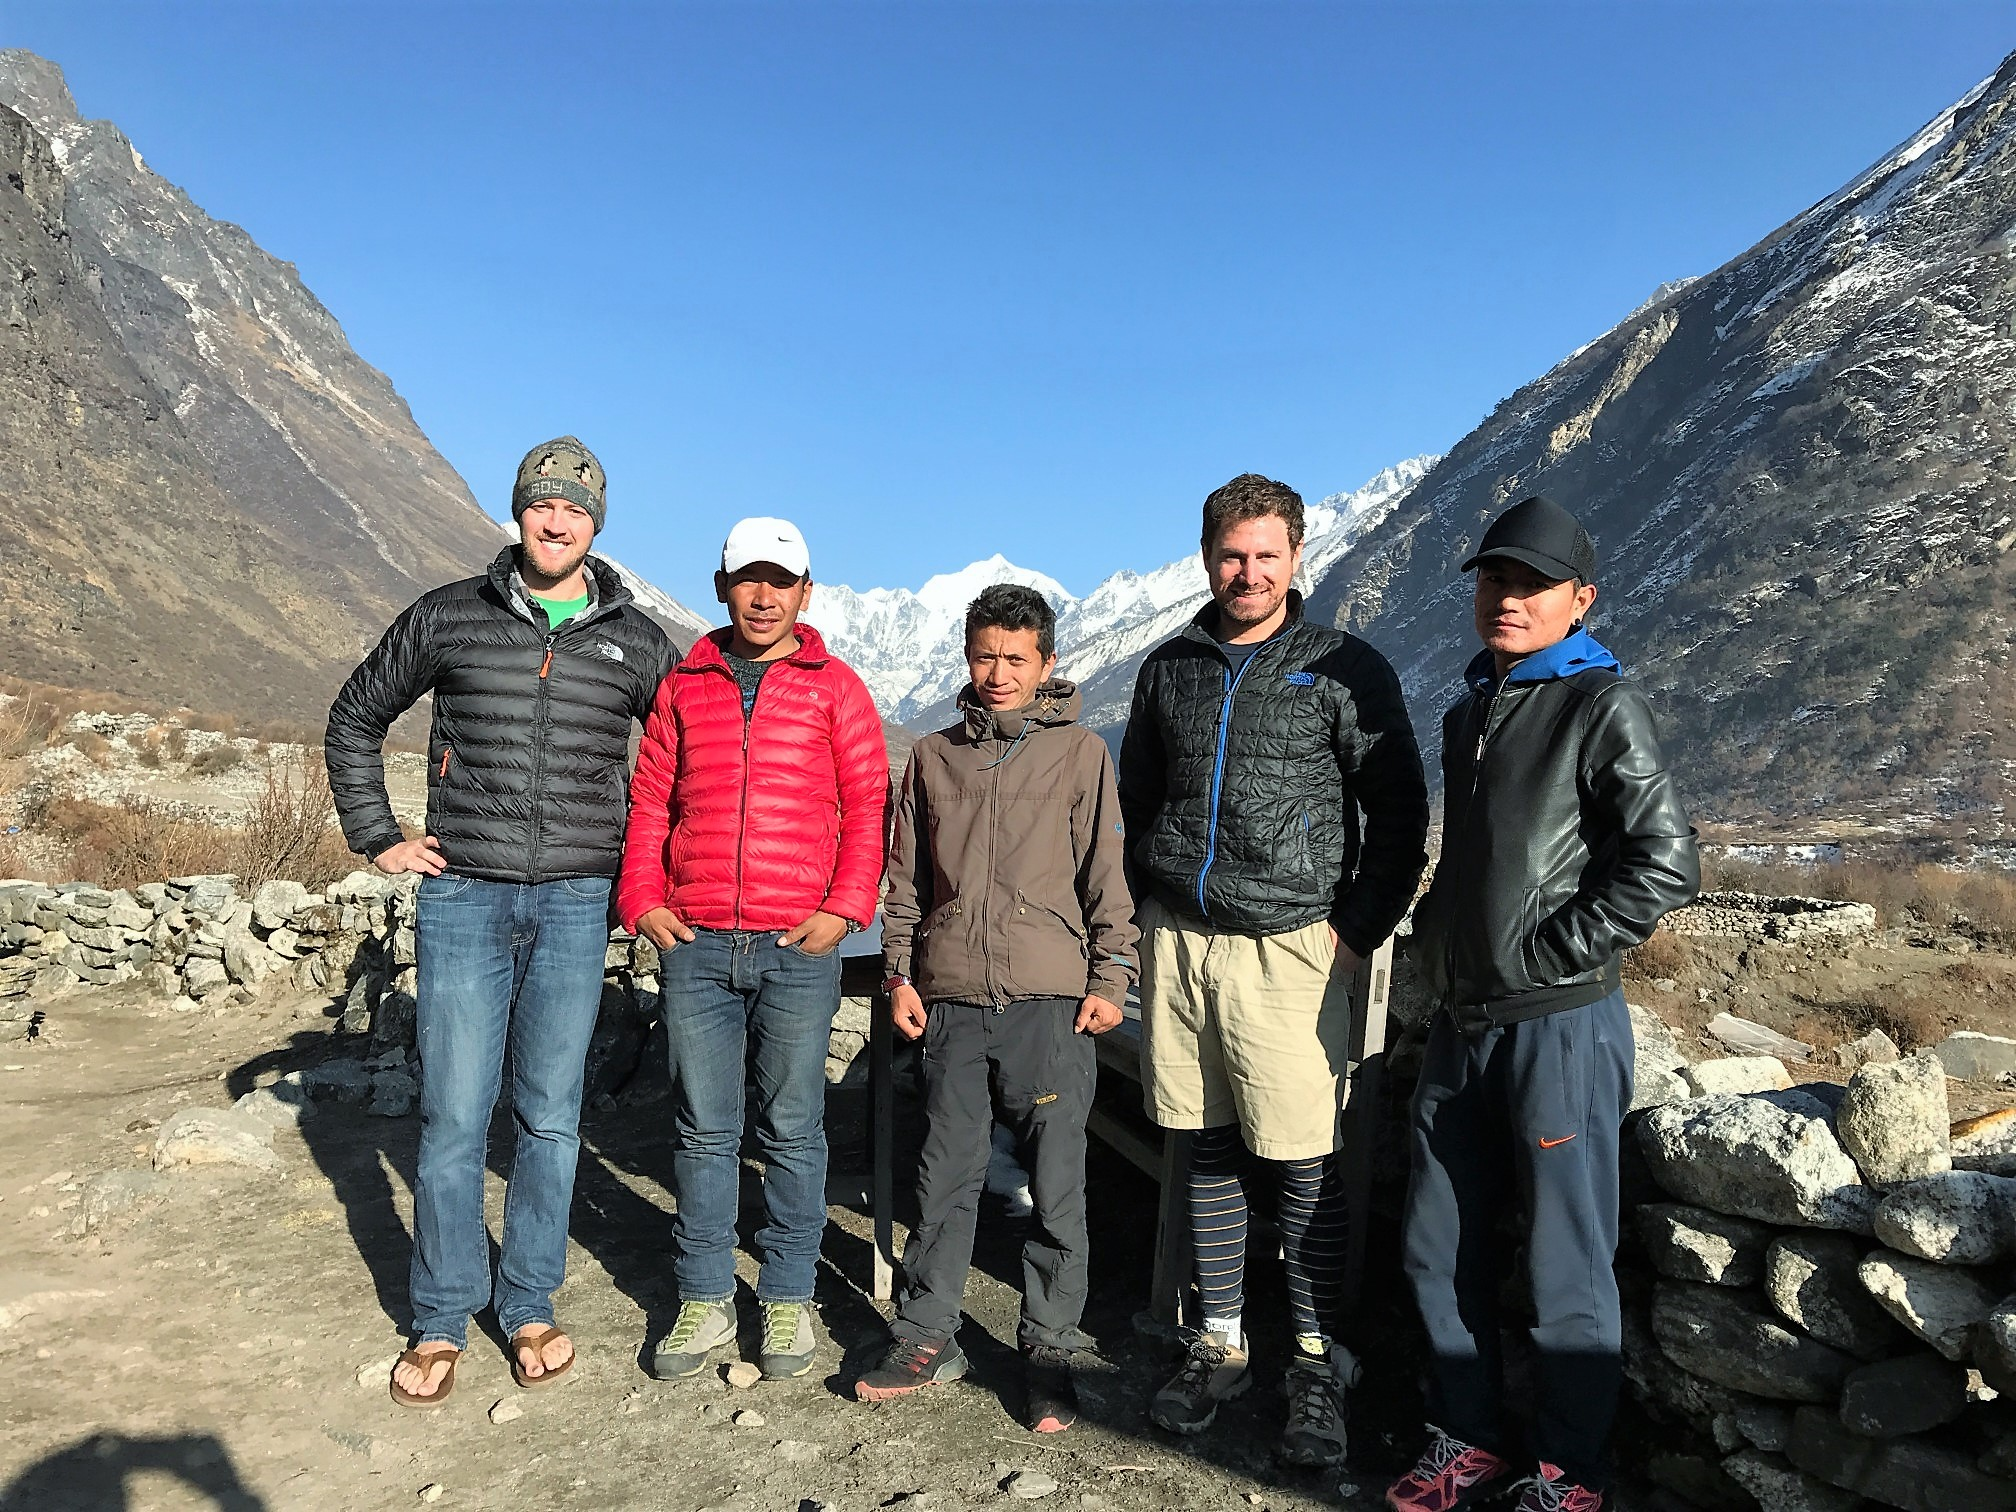 Left to Right: Me, Pasang (Founder Tenjin Eco Treks), Seraph (our guide), Kevin, Chimay (Manager Tenjin Eco Treks)